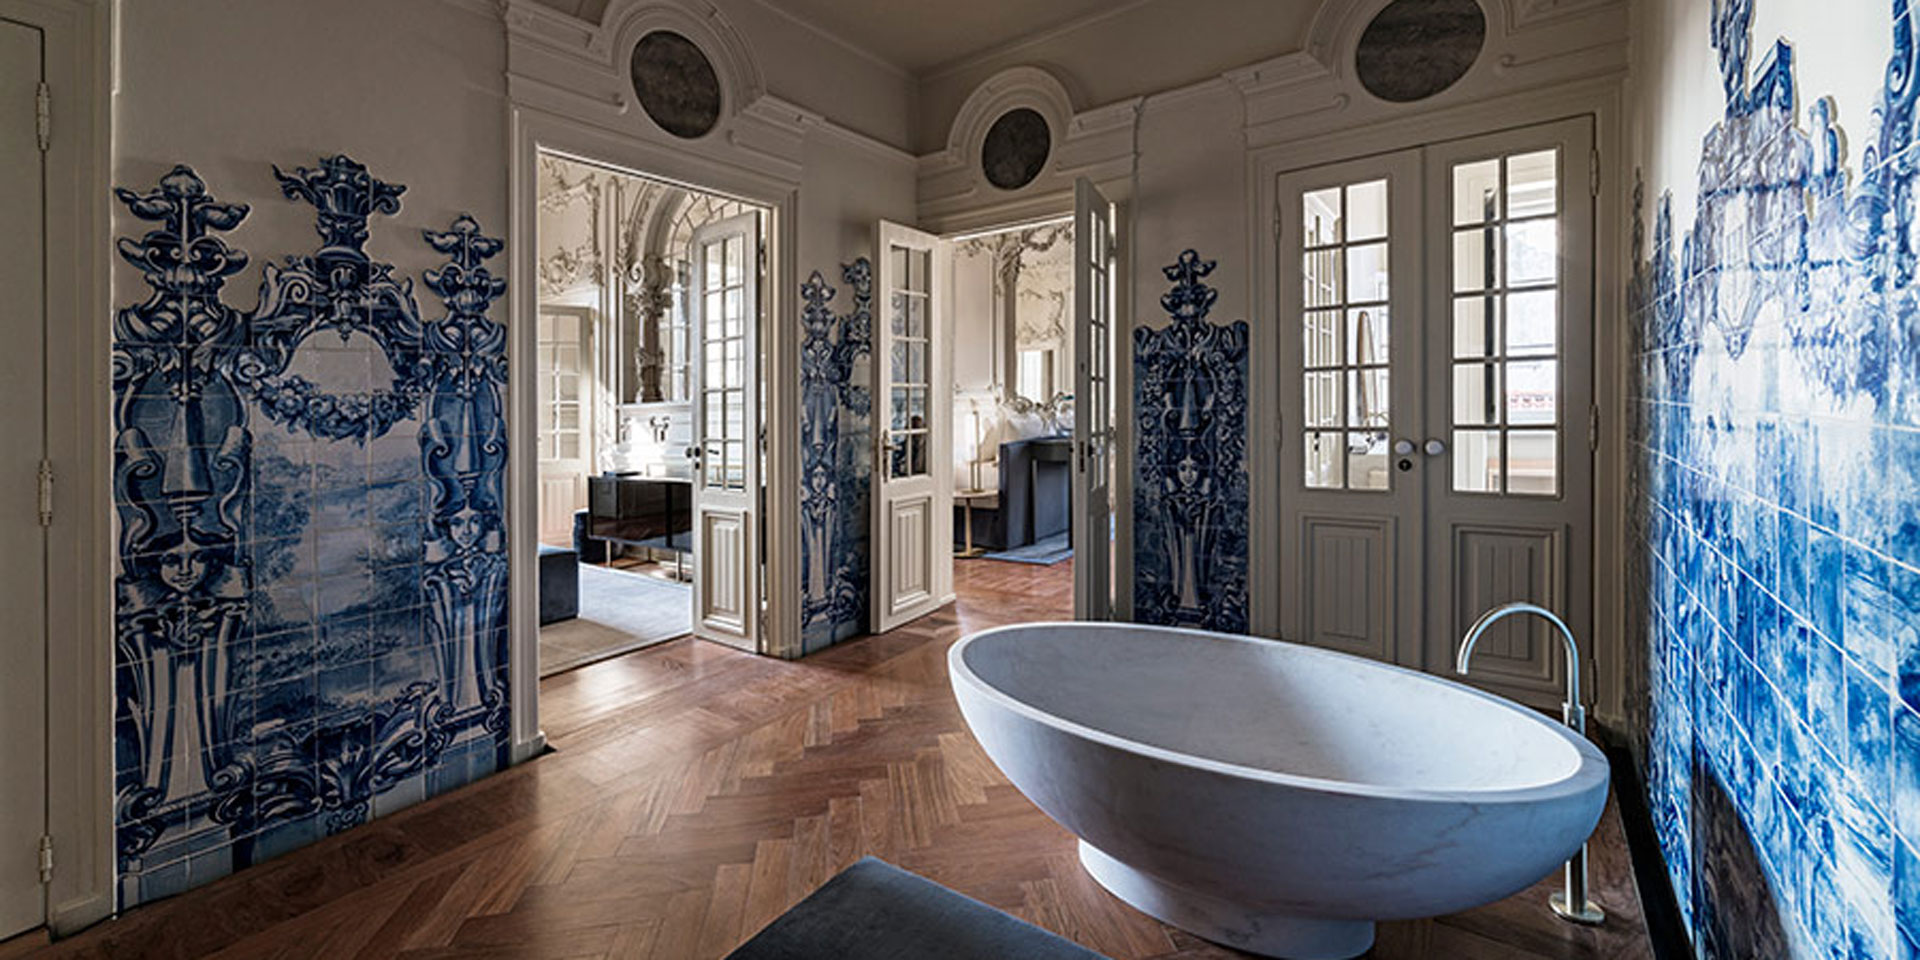 Verride Palacio Santa Catarina is Lisbon's hottest new hotel